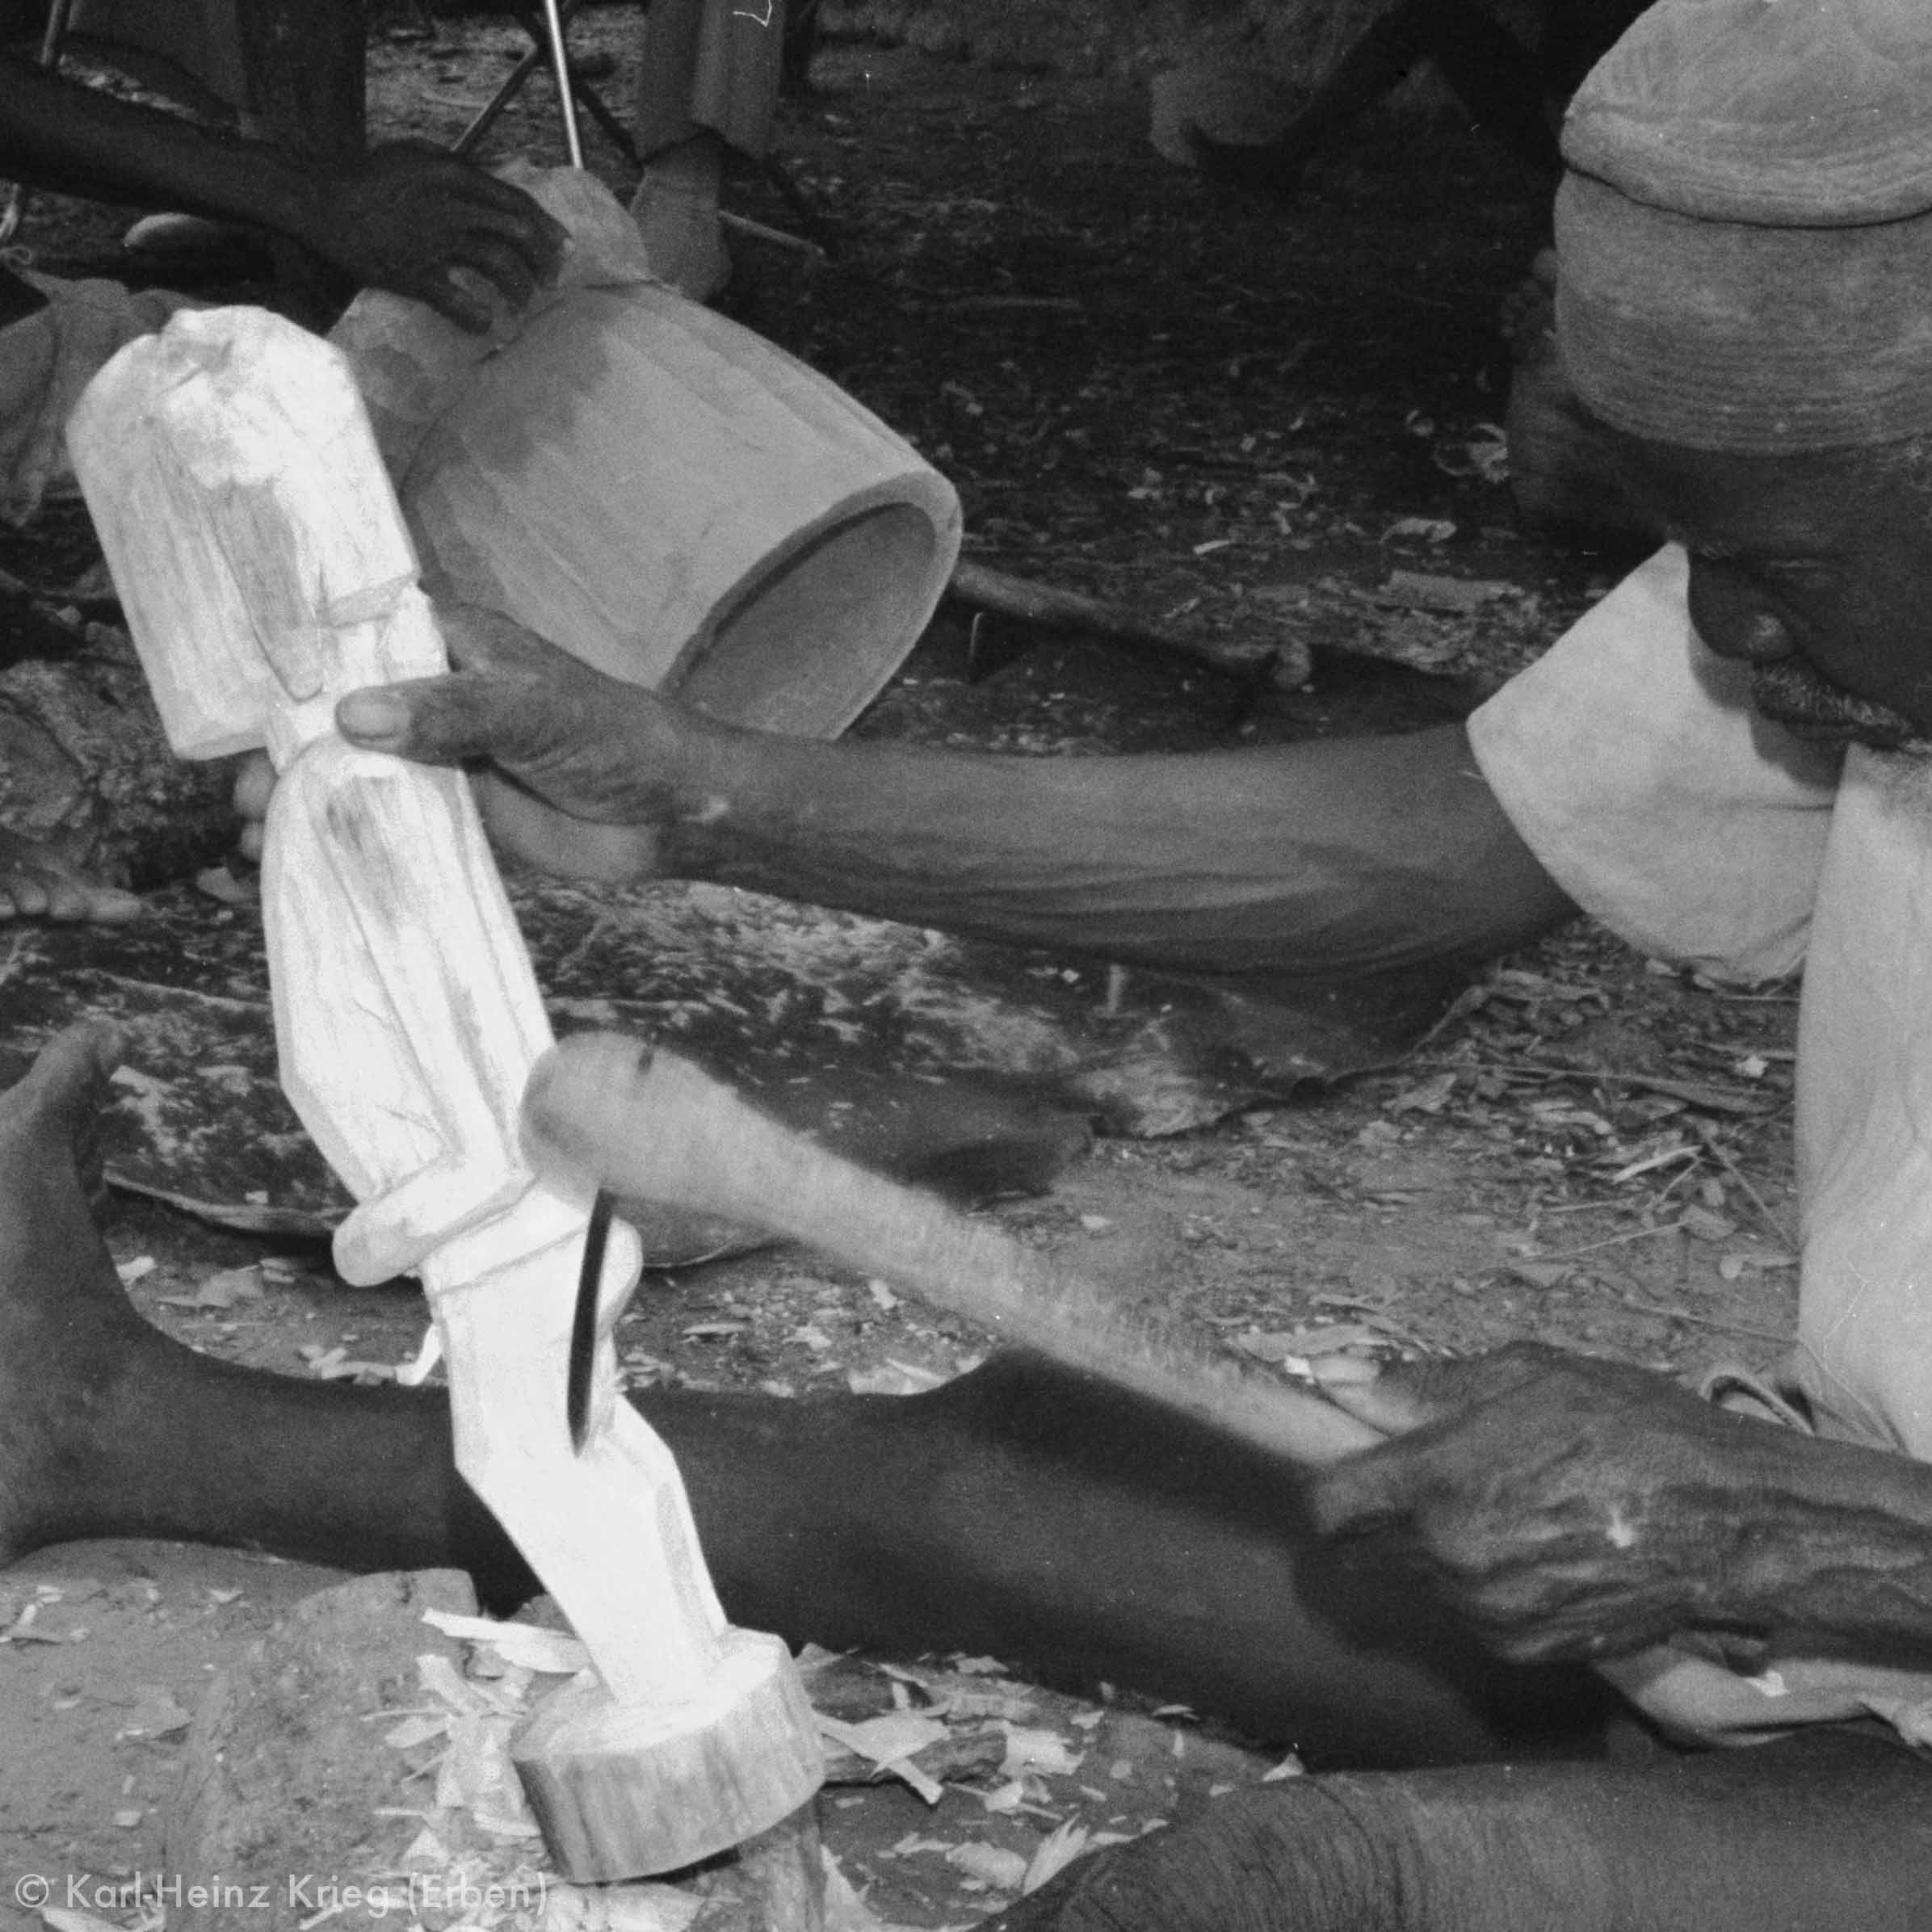 Ynadjo Koné carving in his workplace. Photo: Karl-Heinz Krieg, Kolia (Region of Boundiali, Côte d'Ivoire) 1977